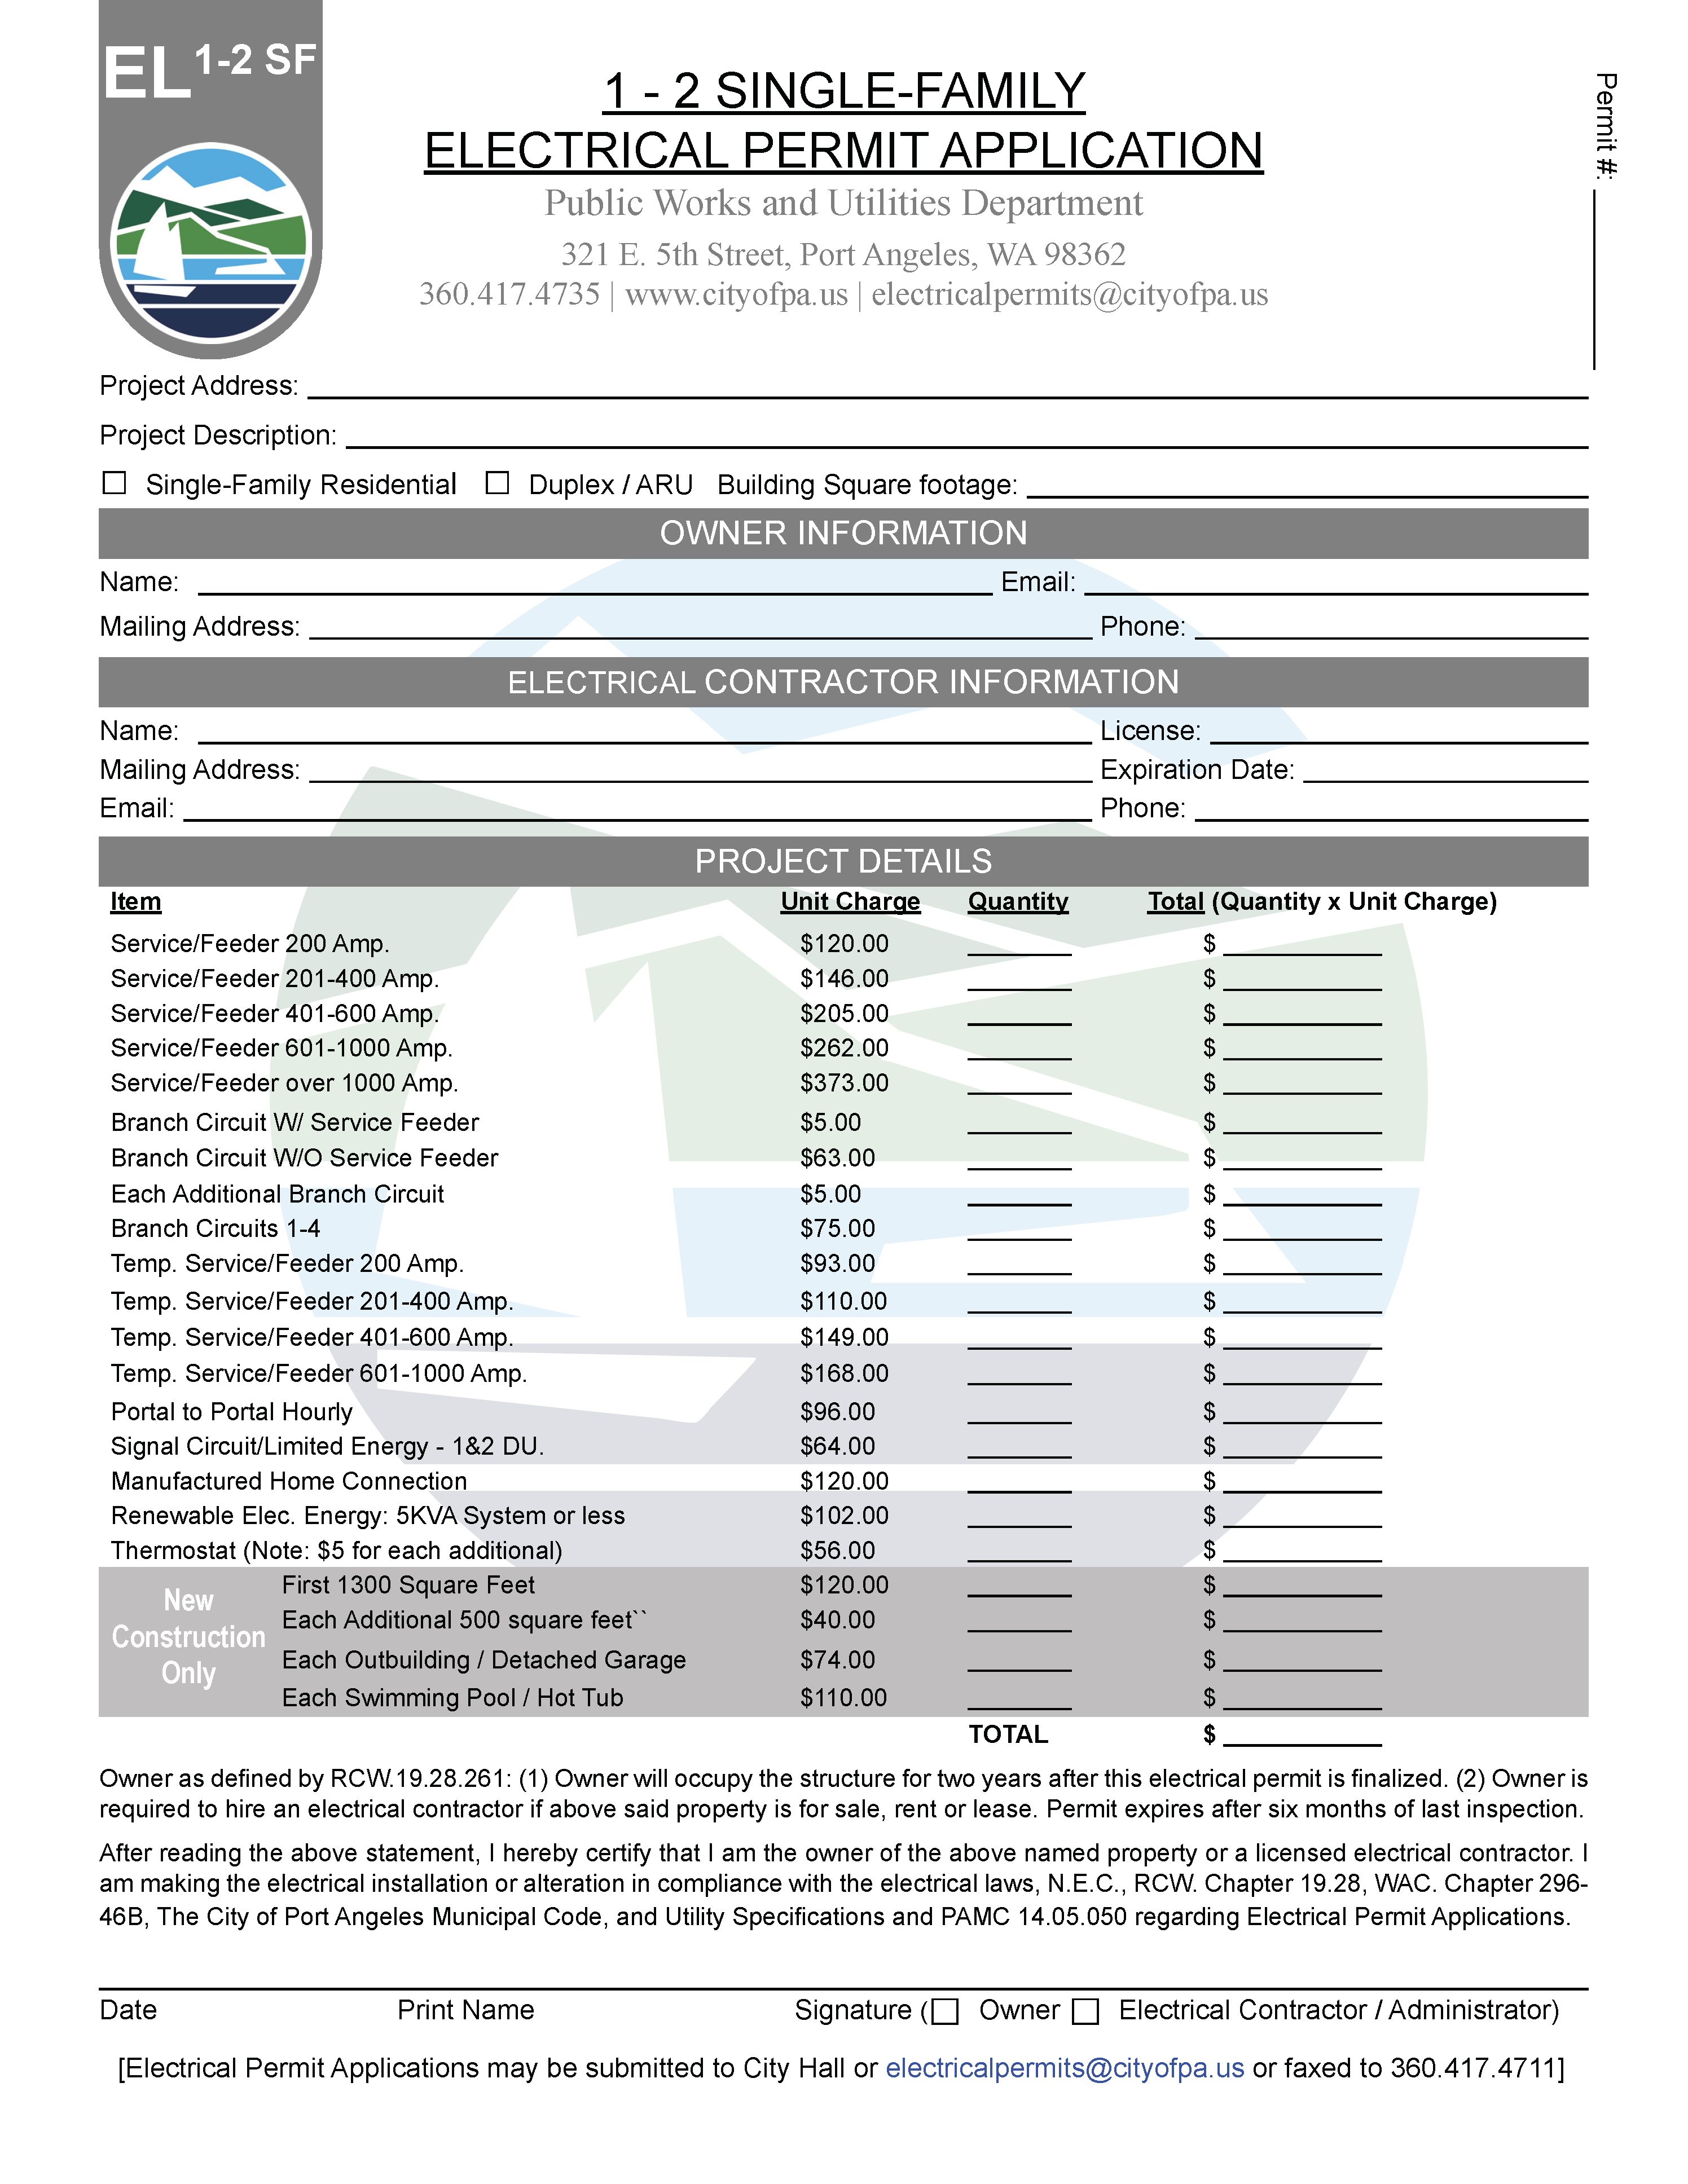 Electrical-Single Family Permit Application